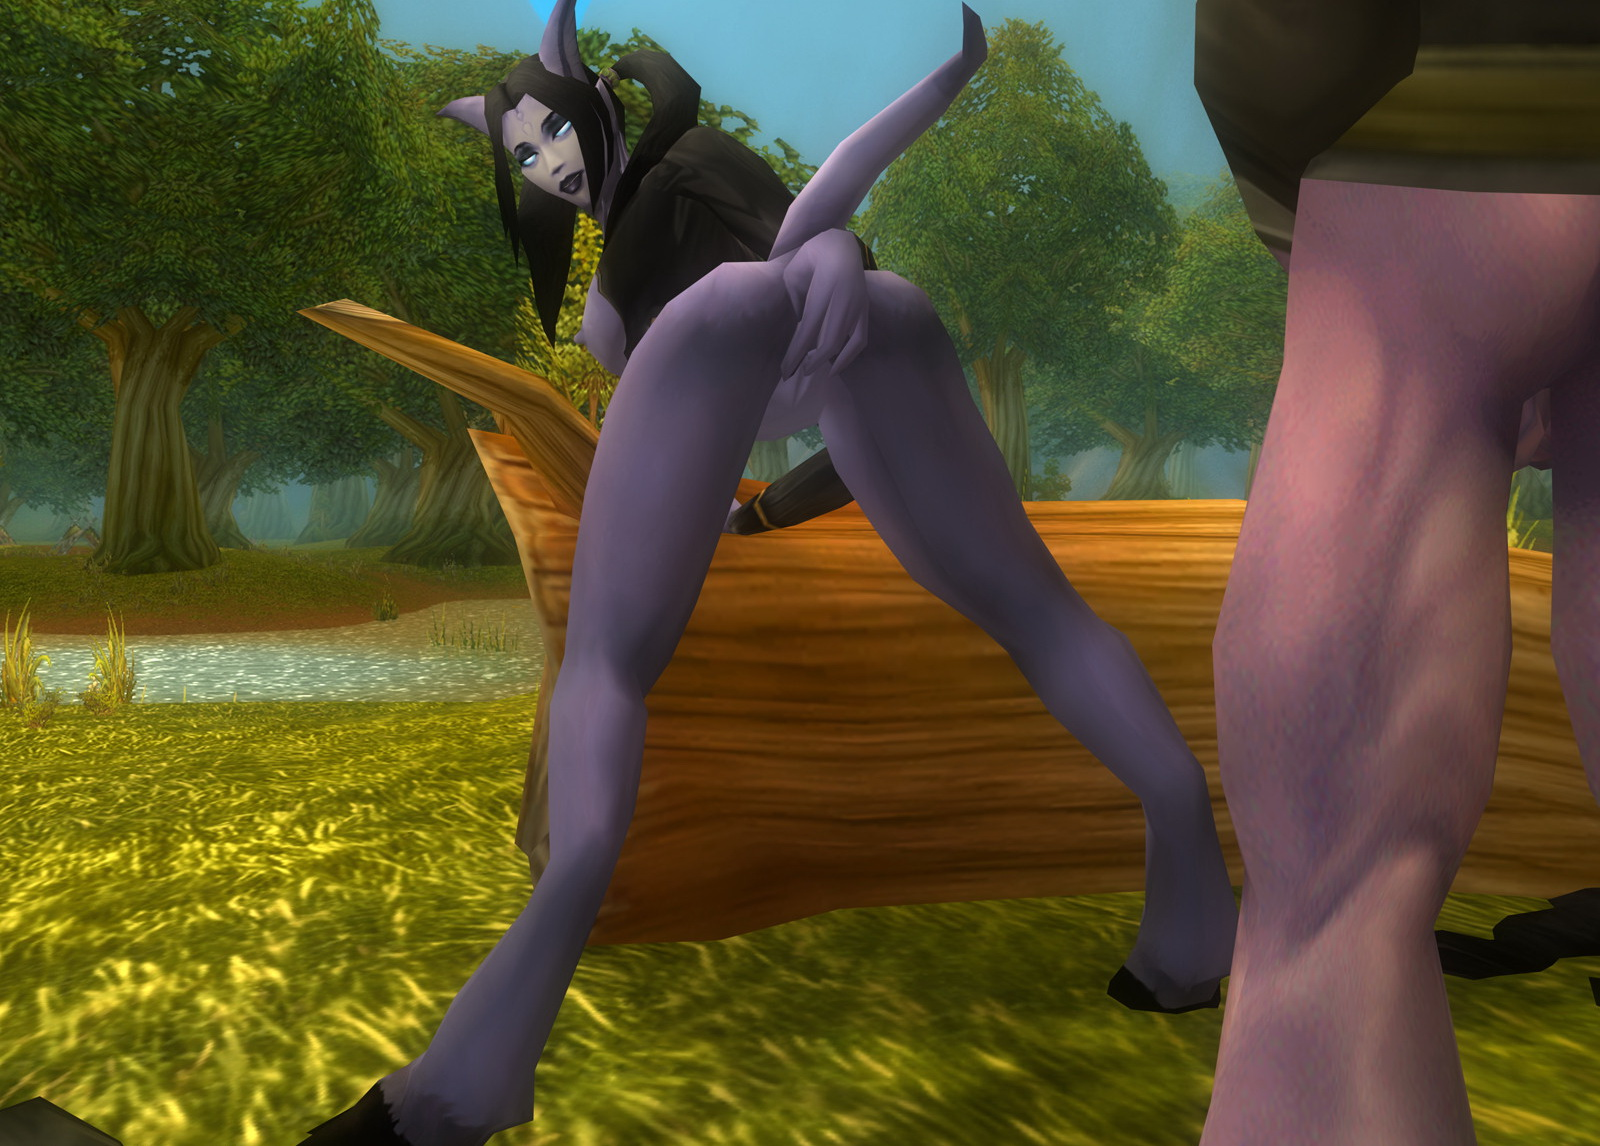 3d World of Warcraft porn addon nsfw tube